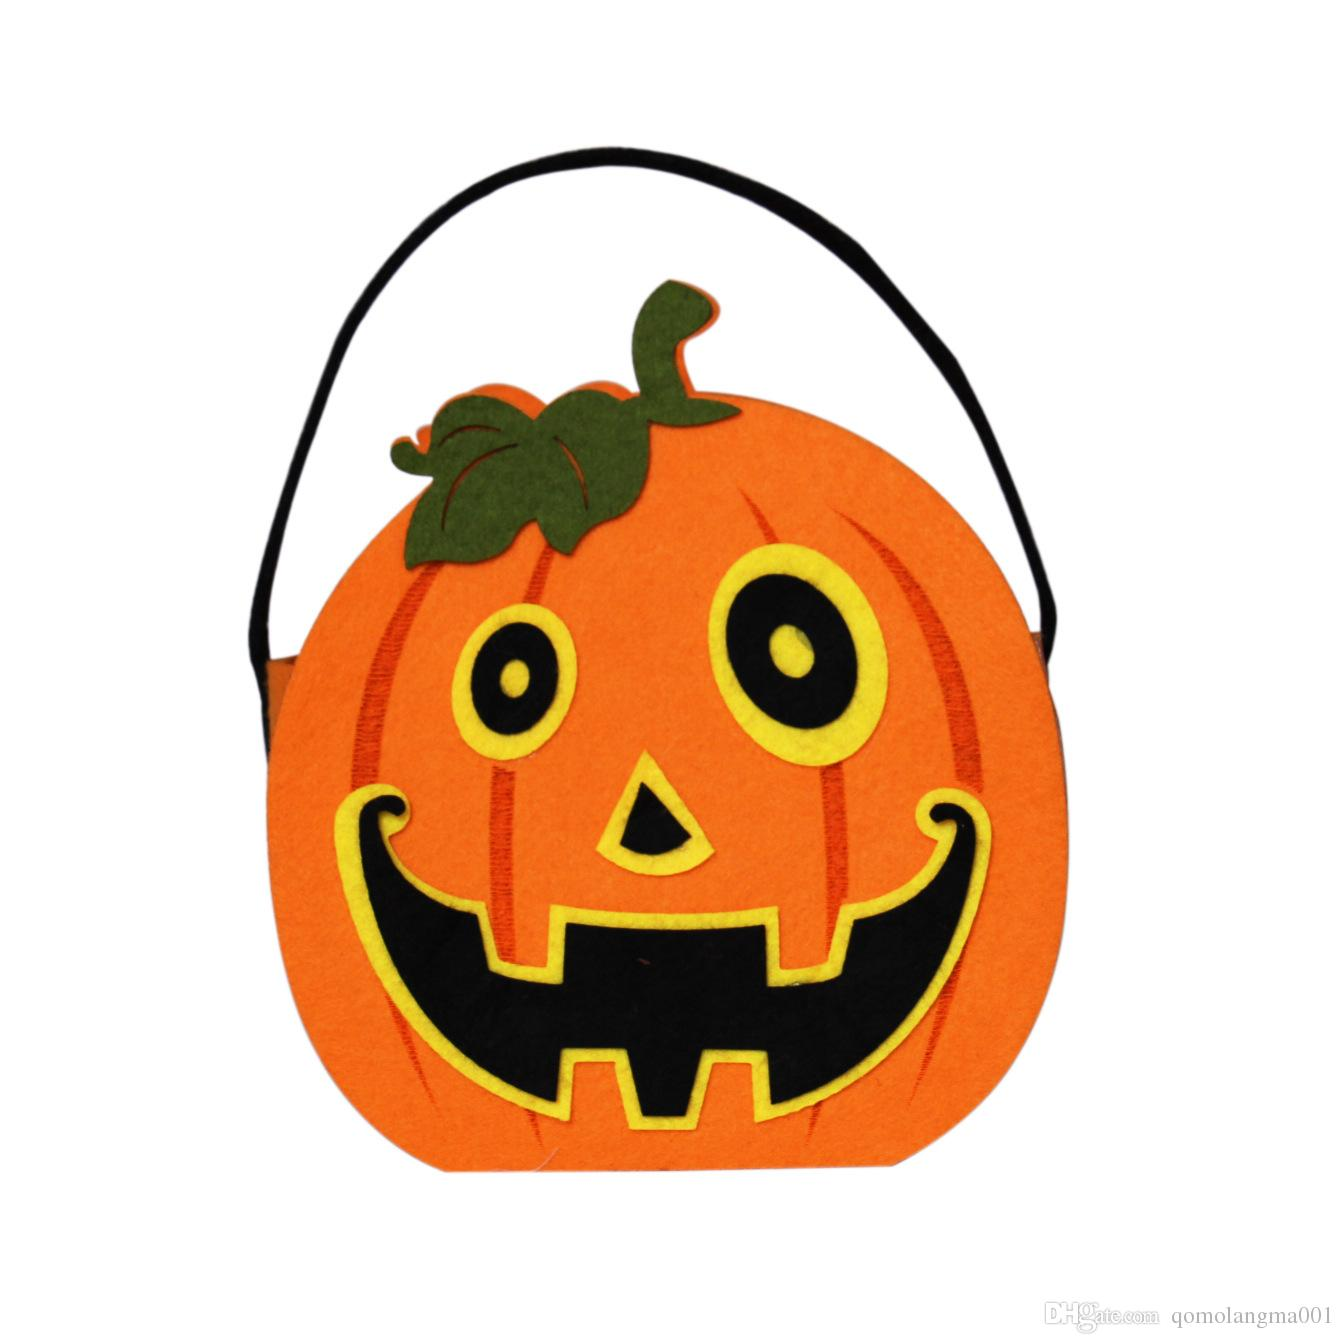 Halloween Pumpkin Candy Bag Trick Treat Cute Smile Basket Face Children Gift Handhold Pouch Tote Bag Non-woven Pail Props Decoration Toy 10